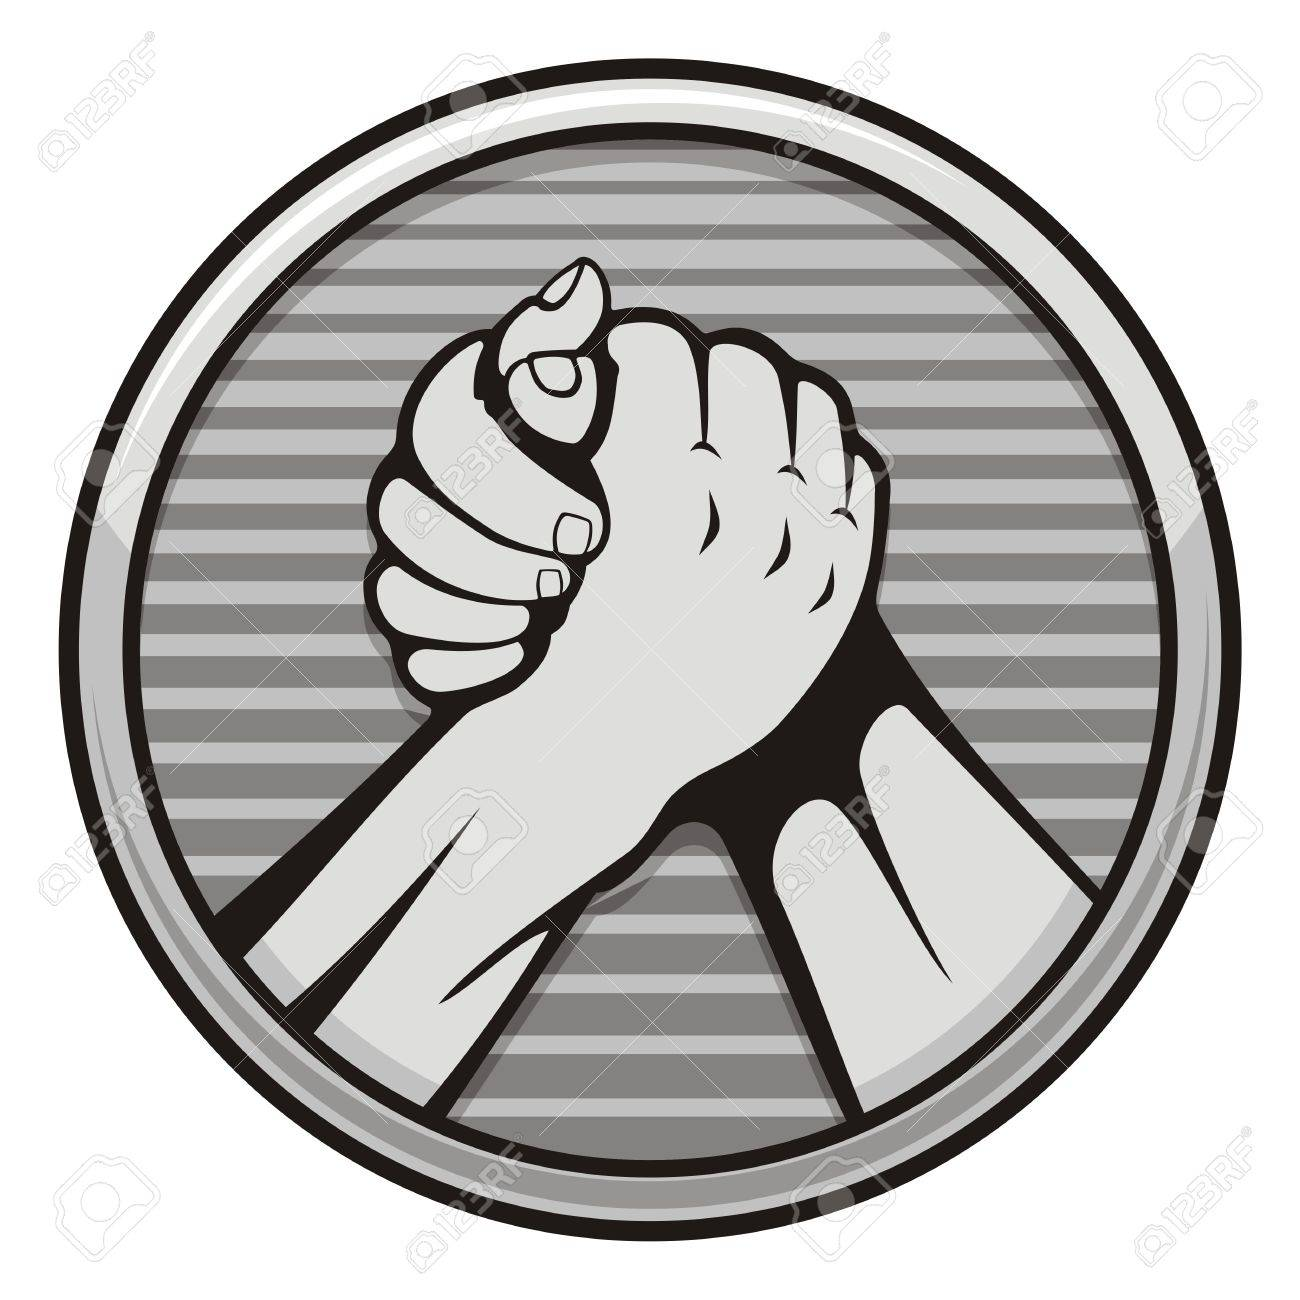 Two hands icon in arm wrestling, gray round medal isolated on white background. - 11092914